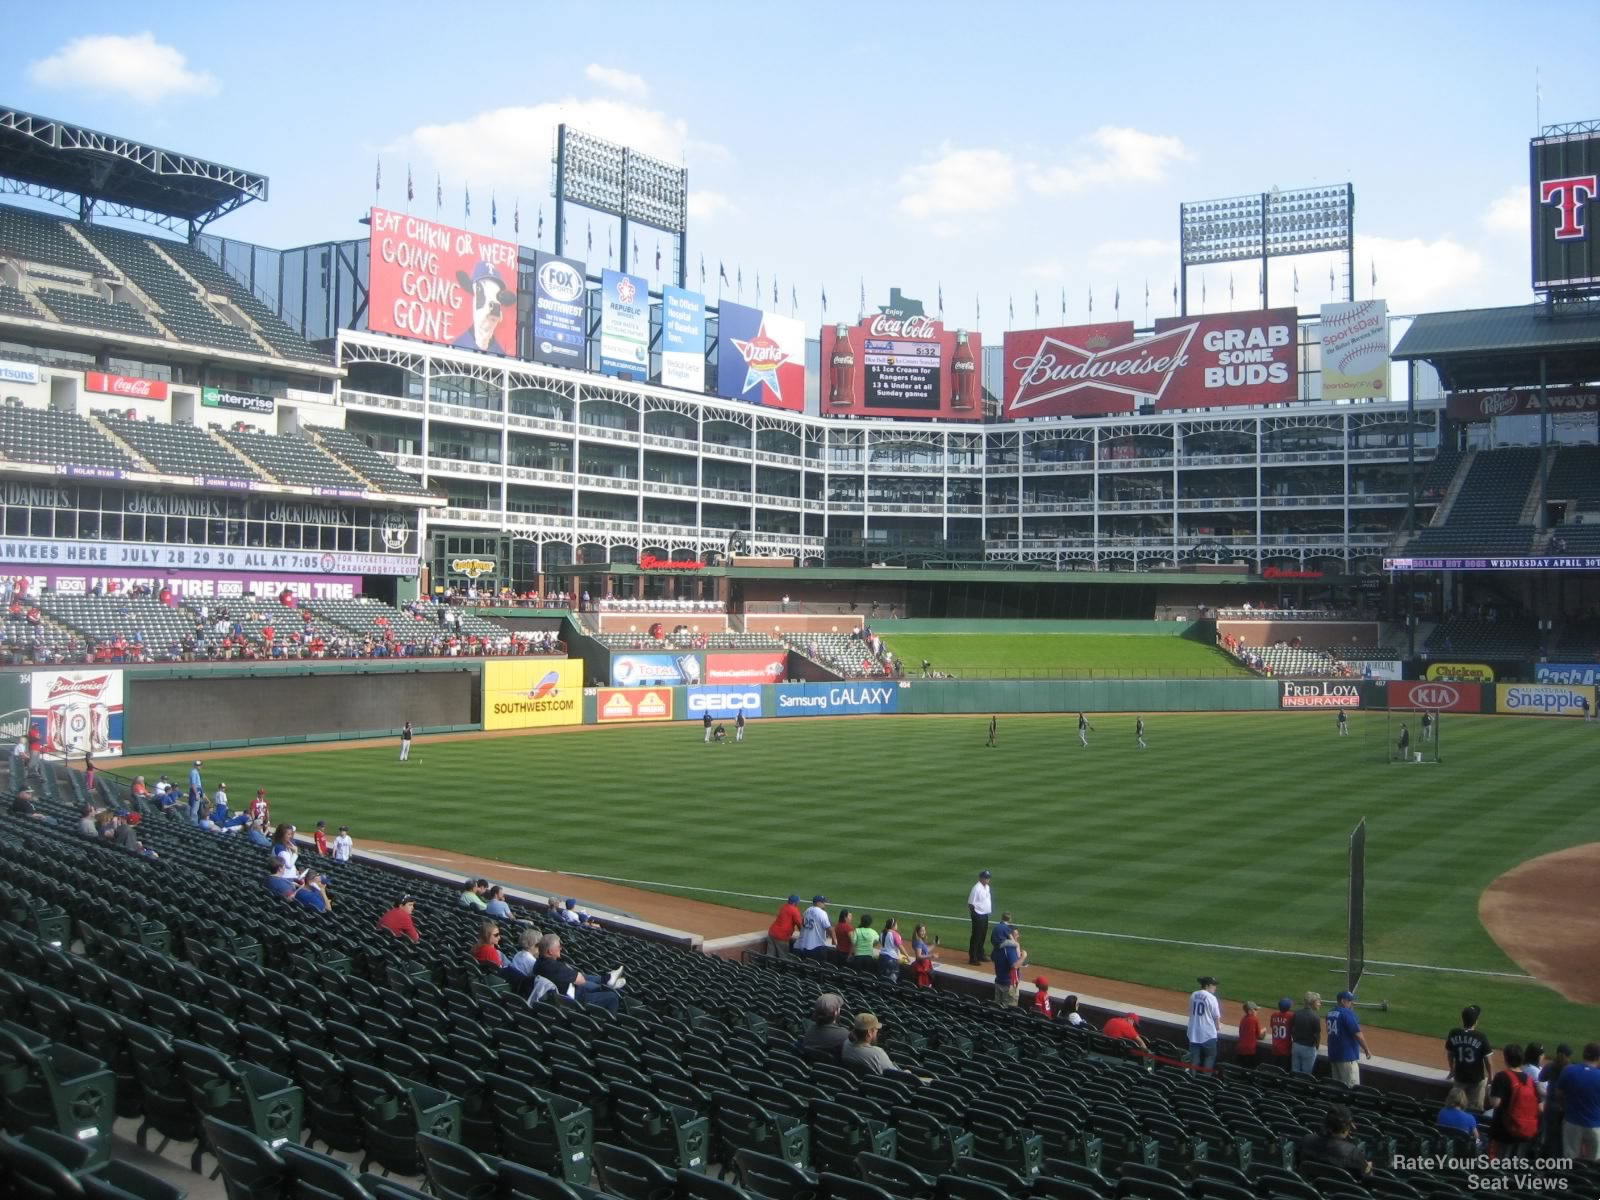 Closest Hotel To Globe Life Park